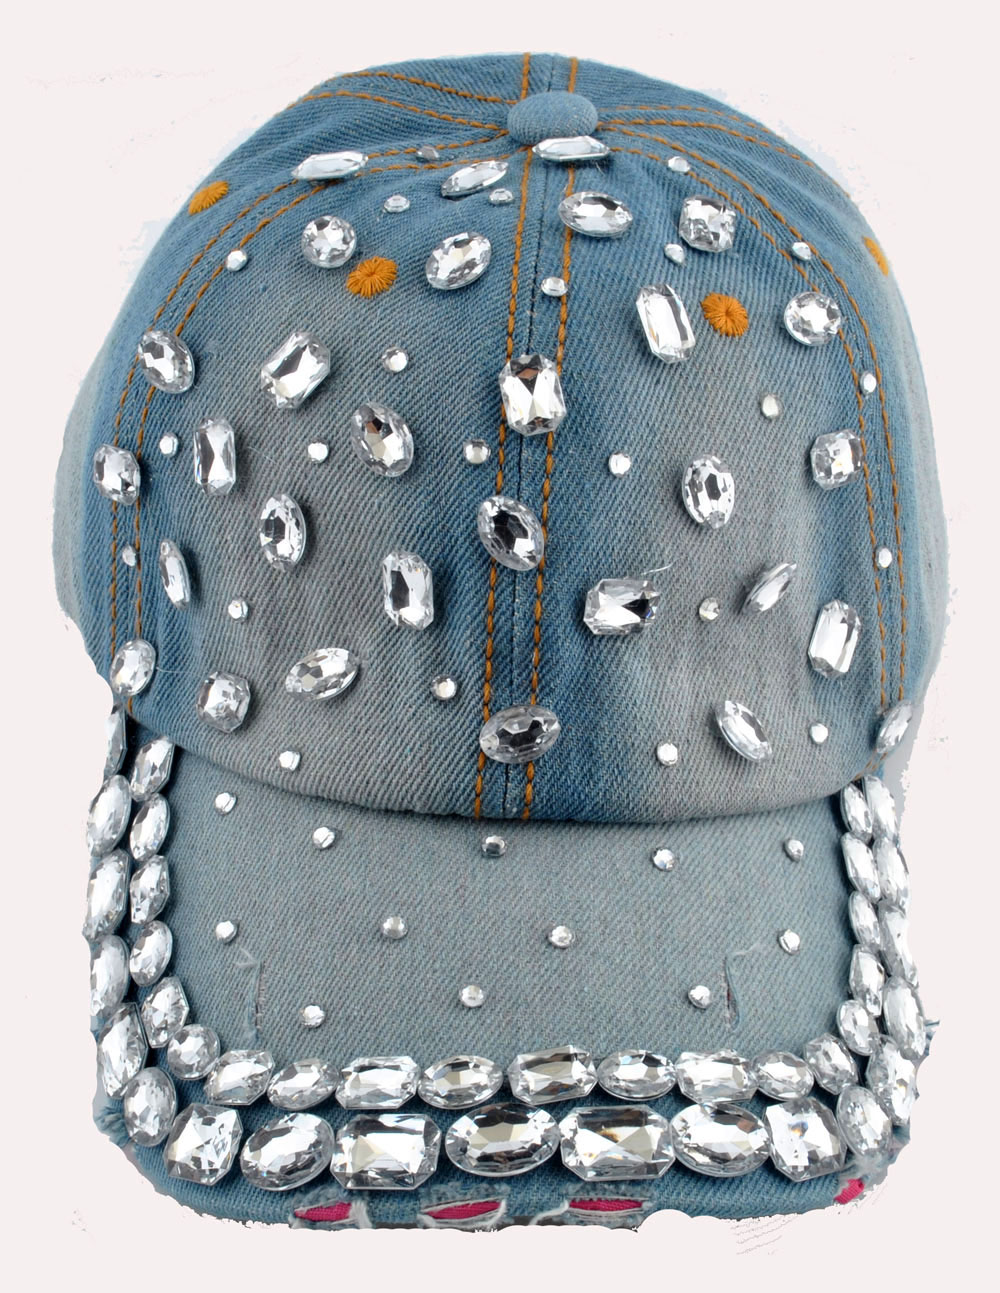 Chic Womens Men/'s Rhinestone Crystal Baseball Cap Bling Denim Sunhat Tennis Hats